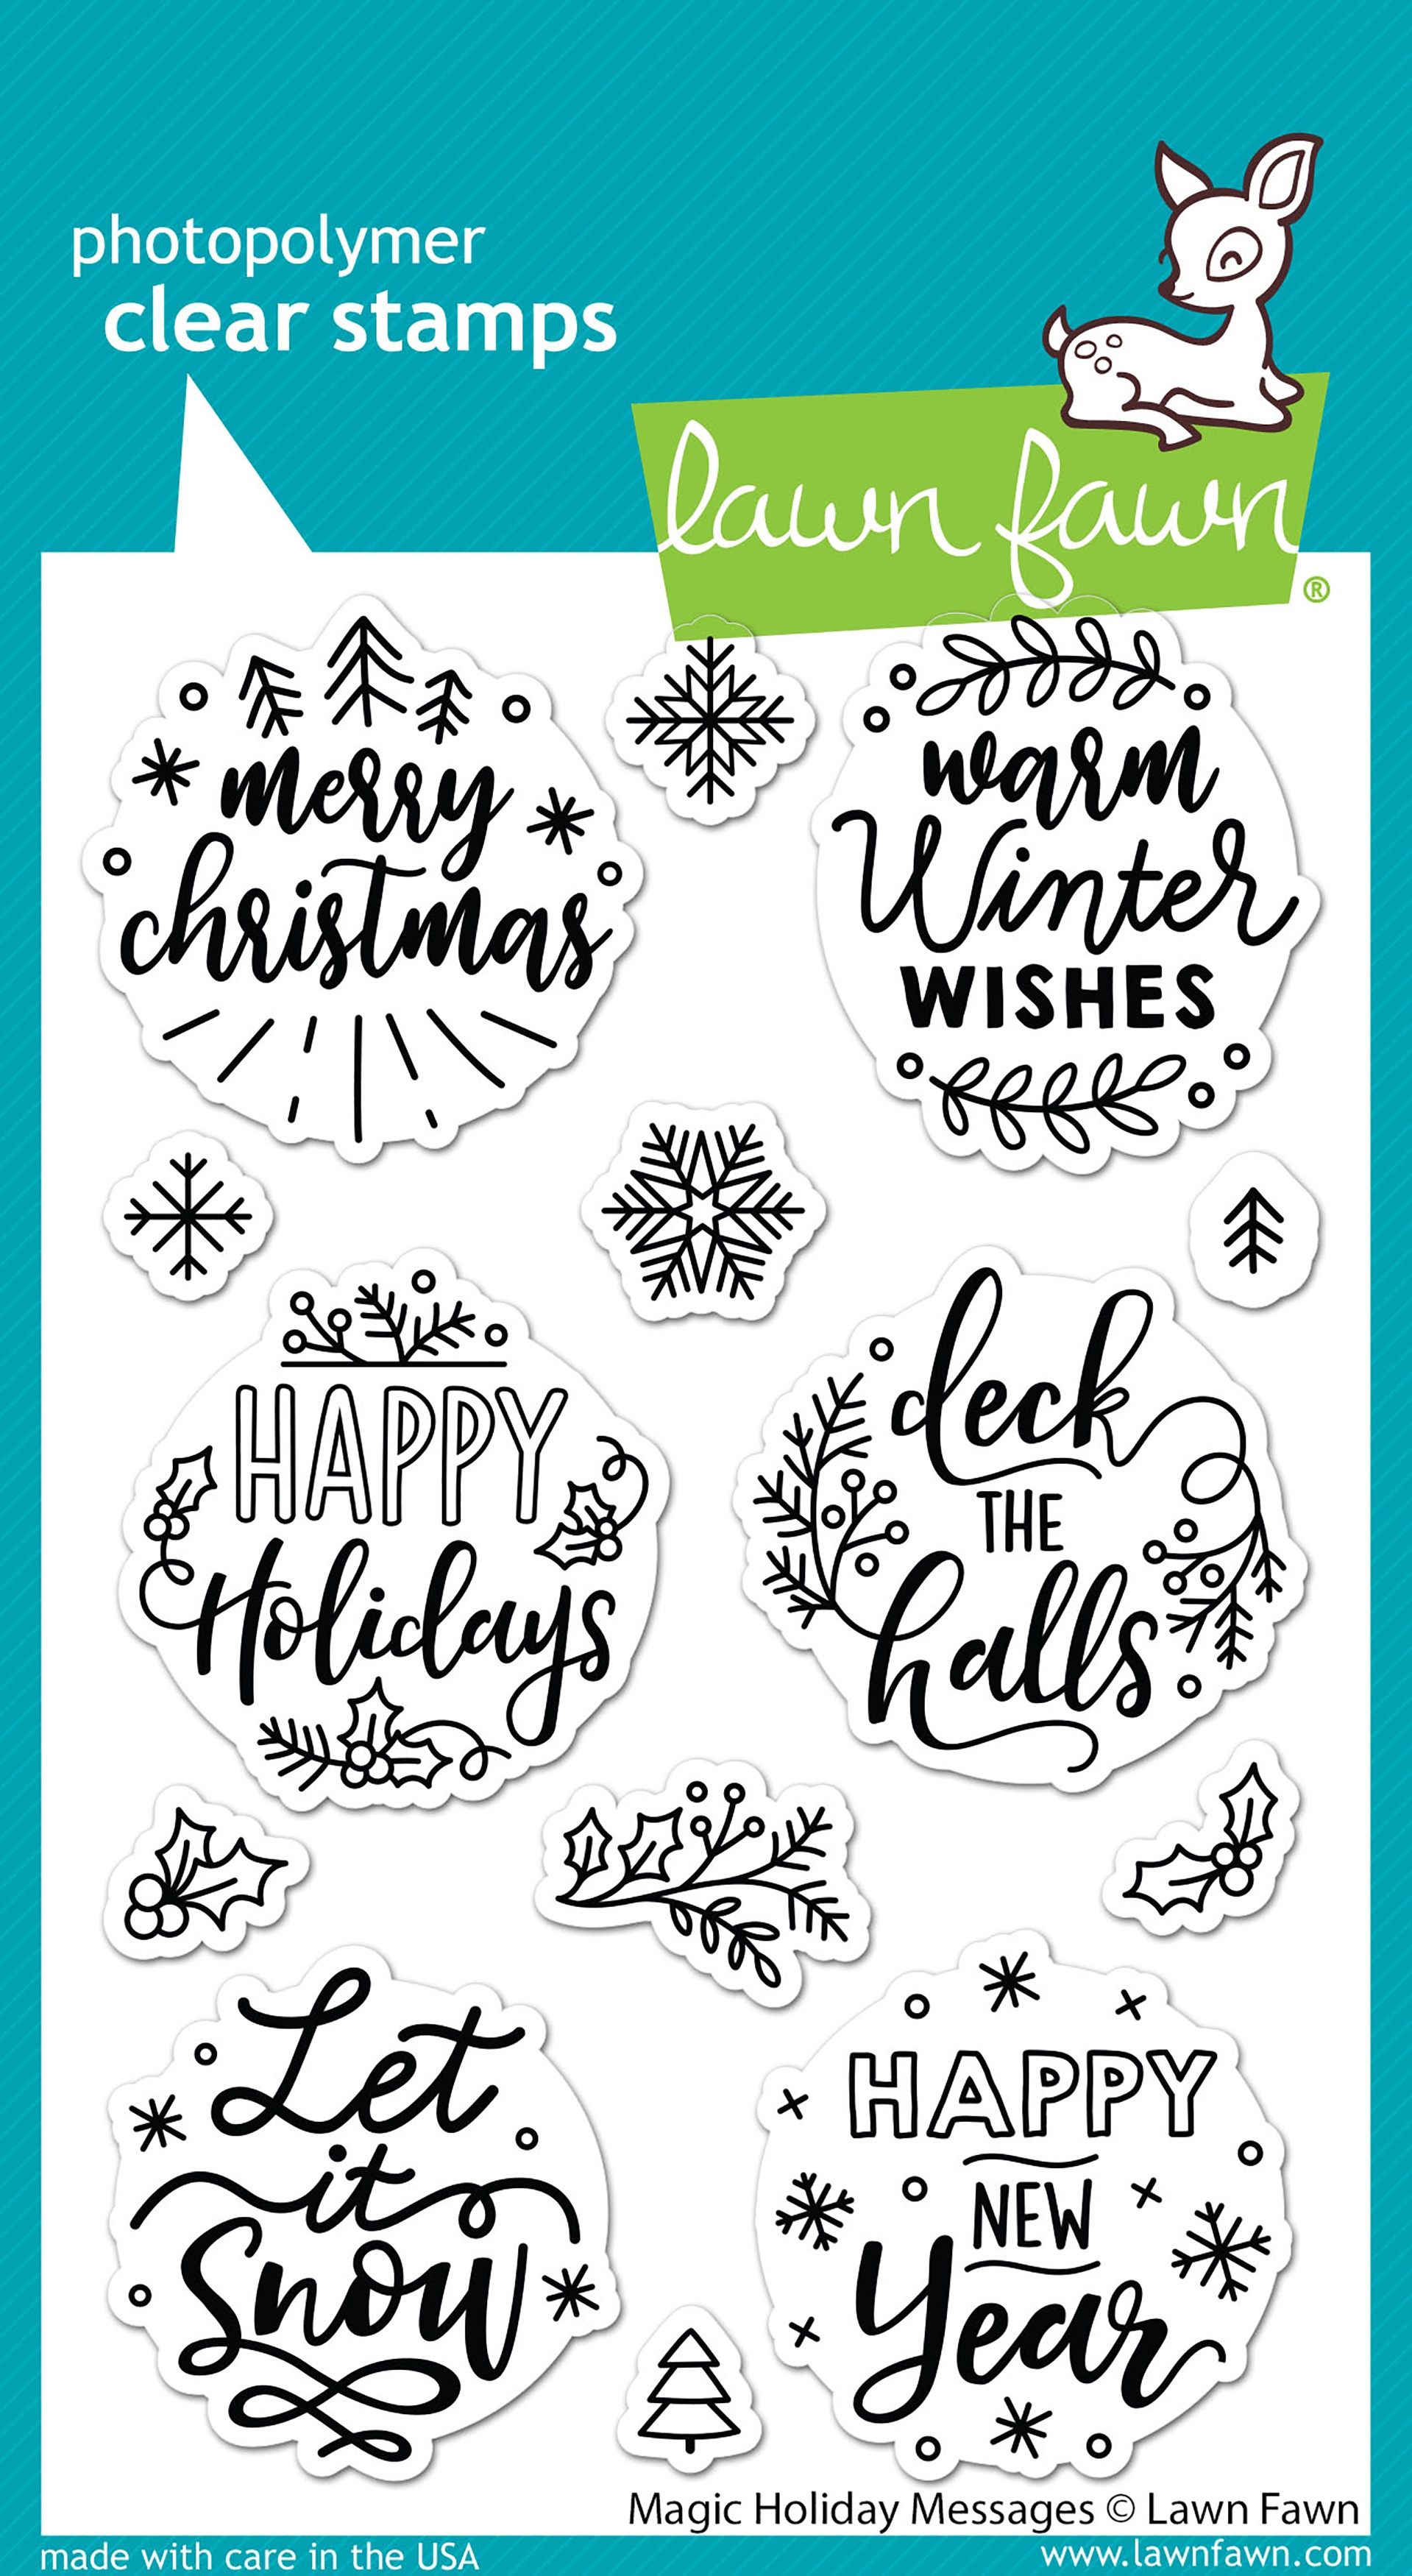 Lawn Fawn - Clear Stamps - Magic Holiday Messages